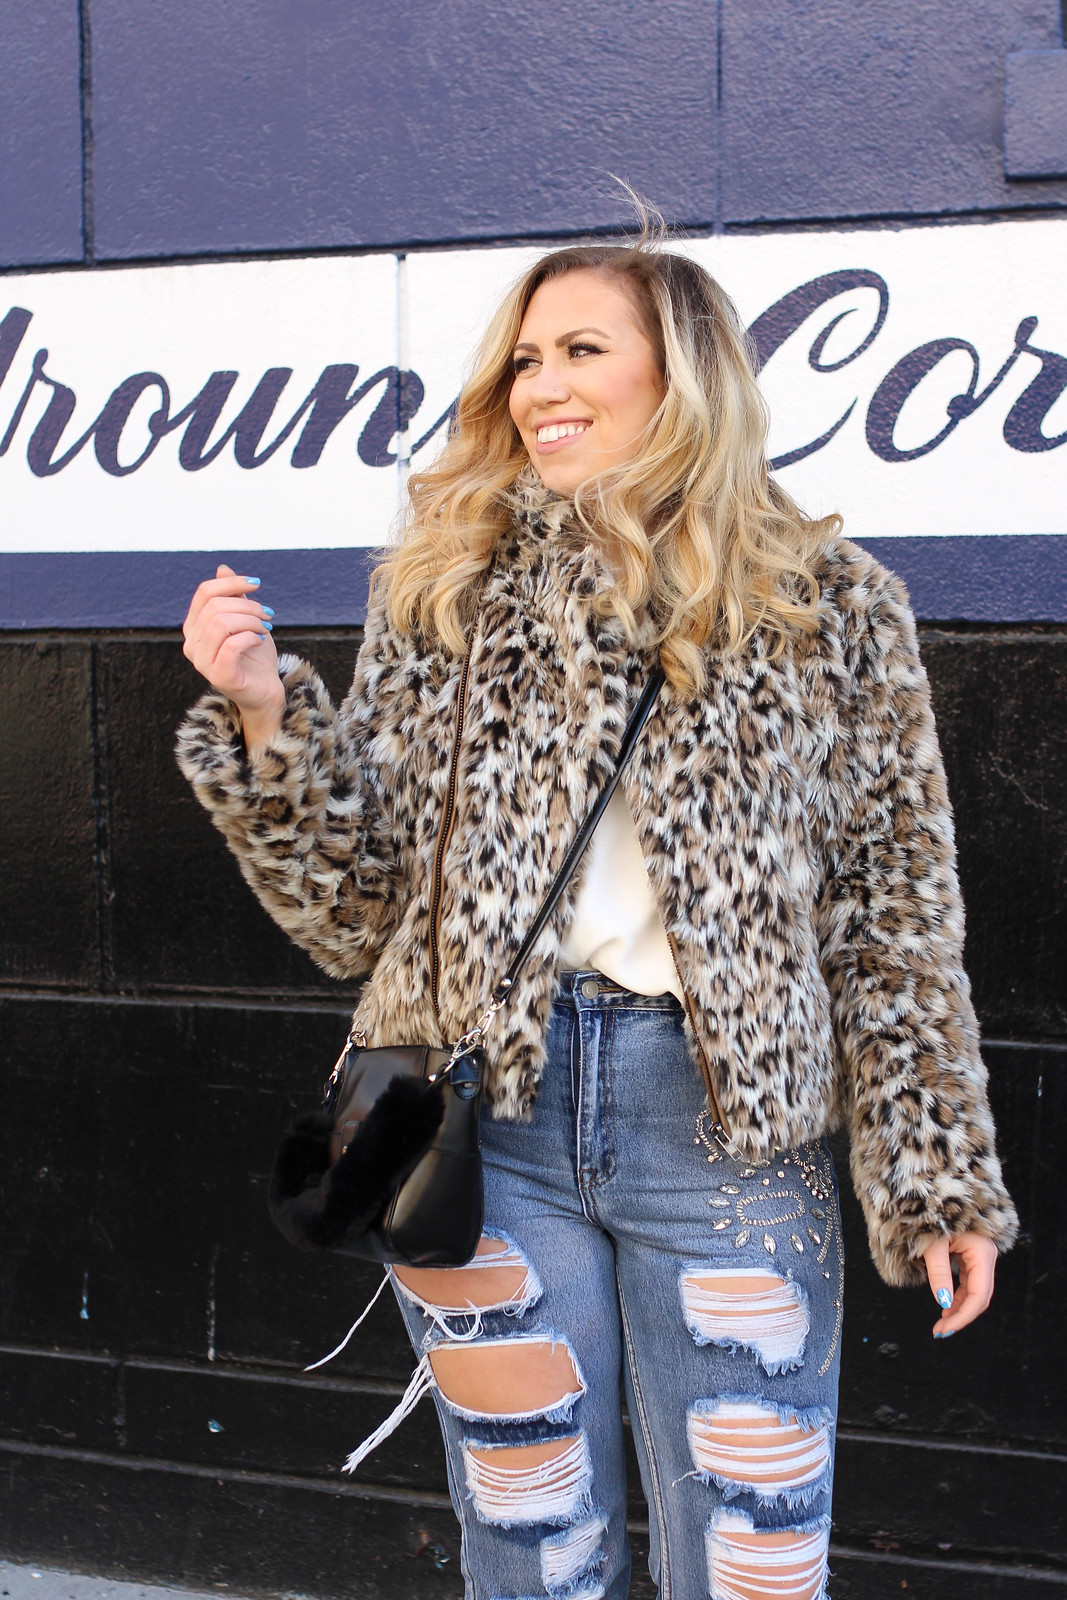 Blonde Girl Smiling In Leopard Coat And Distressed Jeans